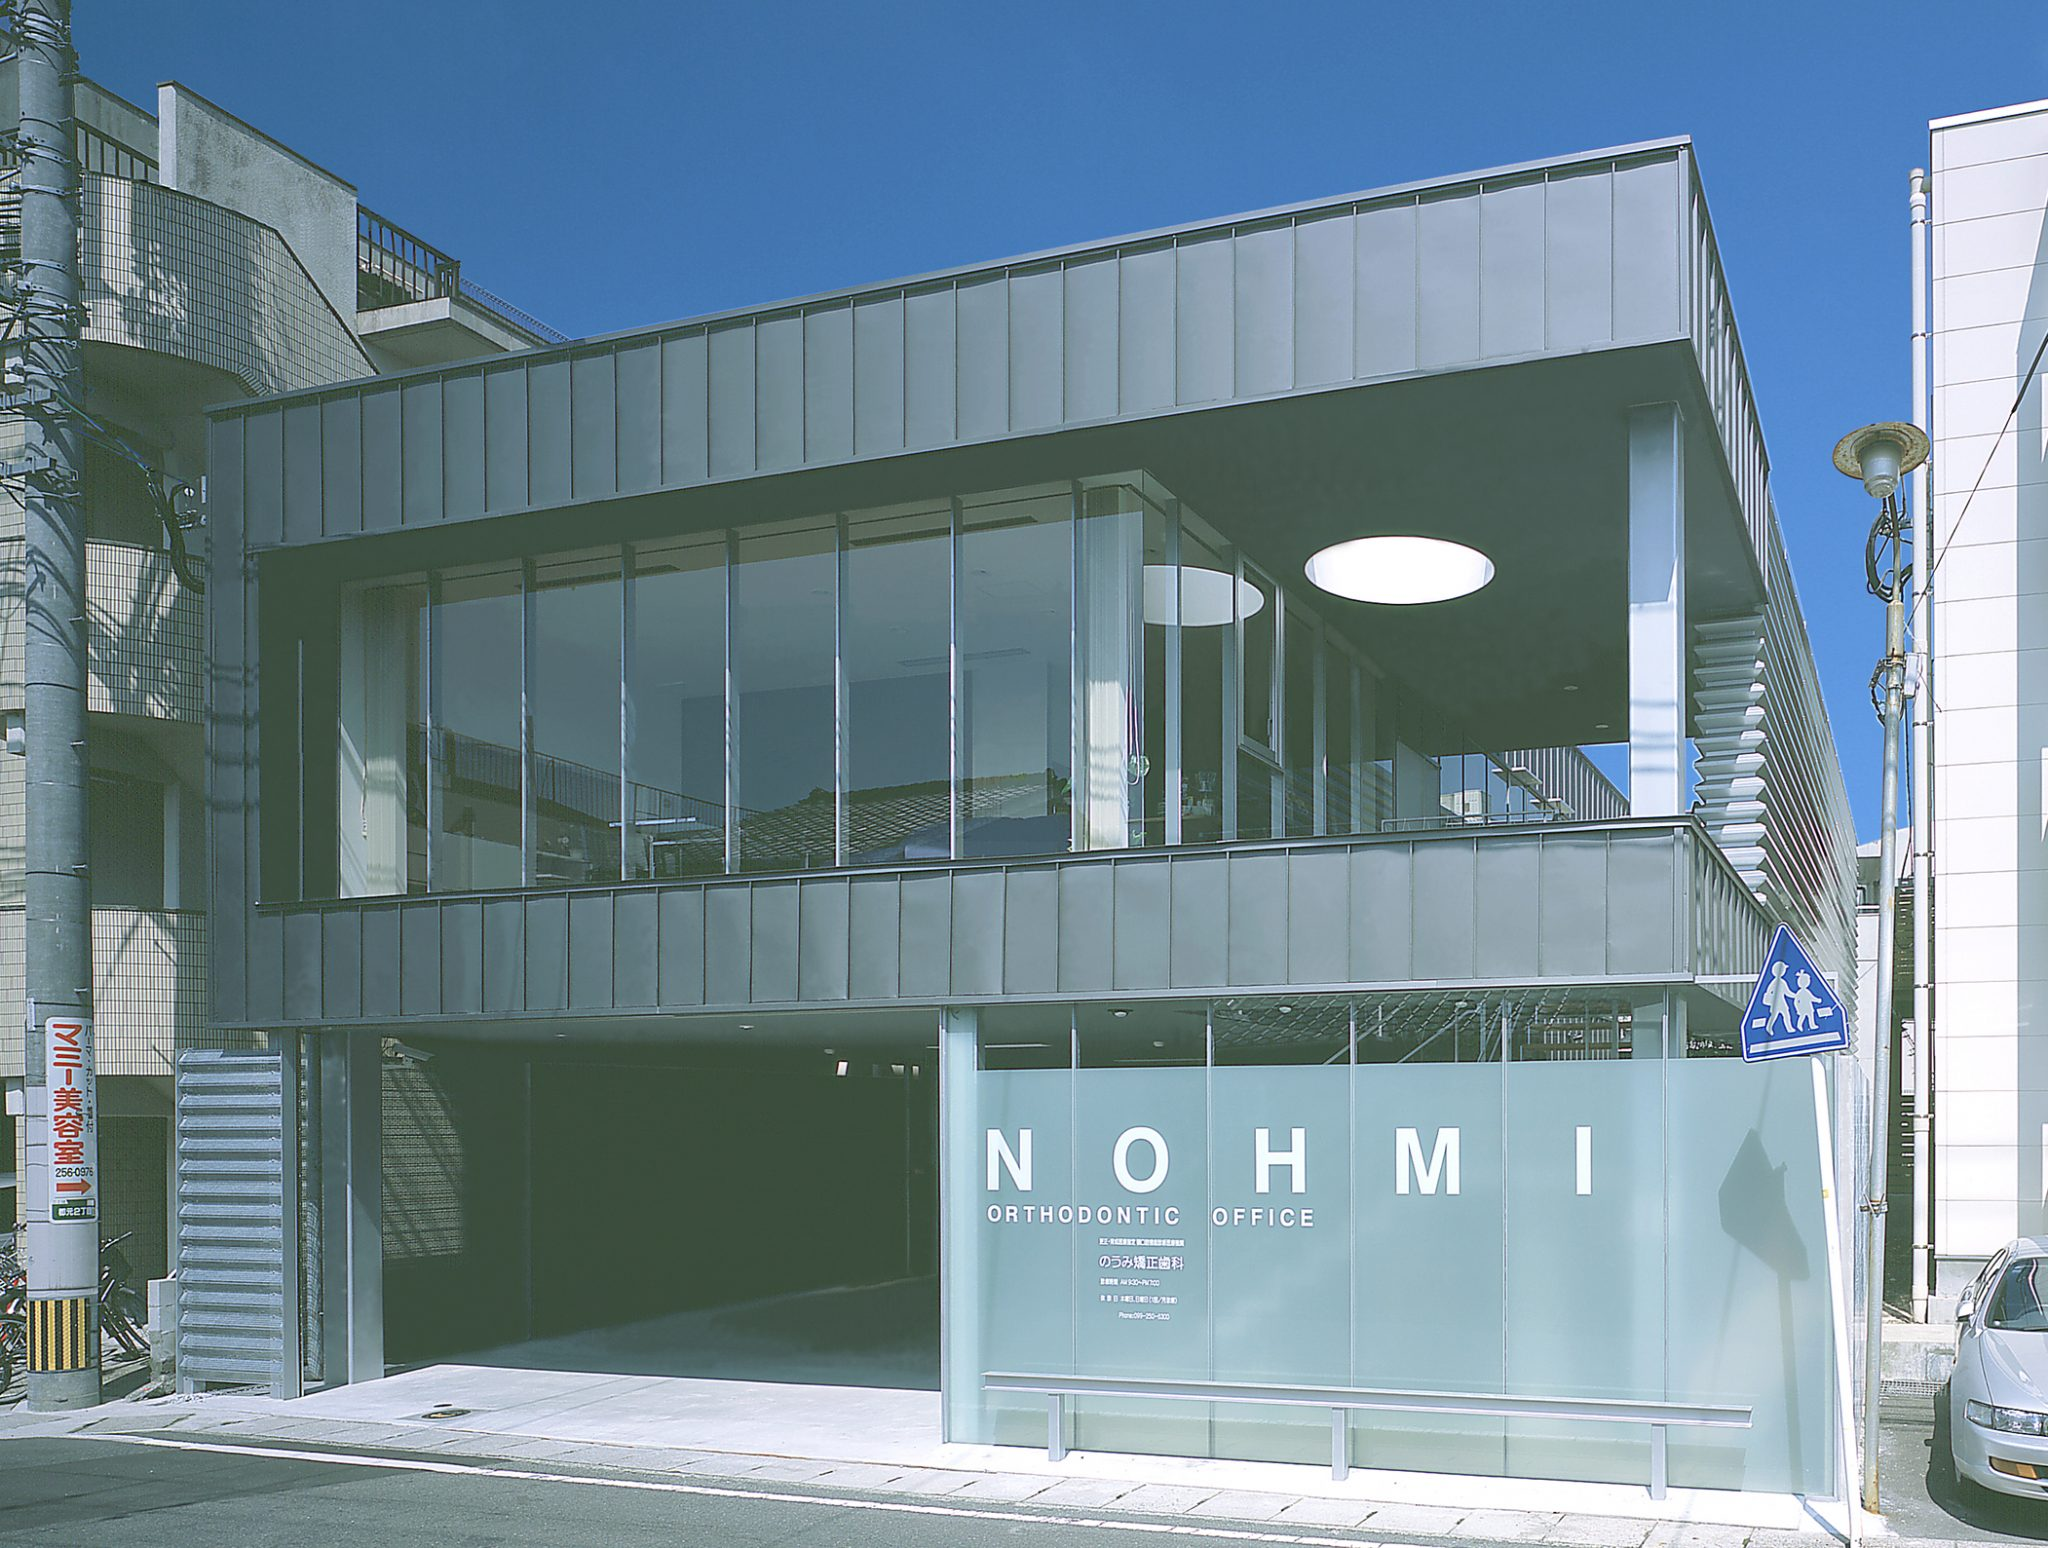 Nohmi Orthodontic Clinic